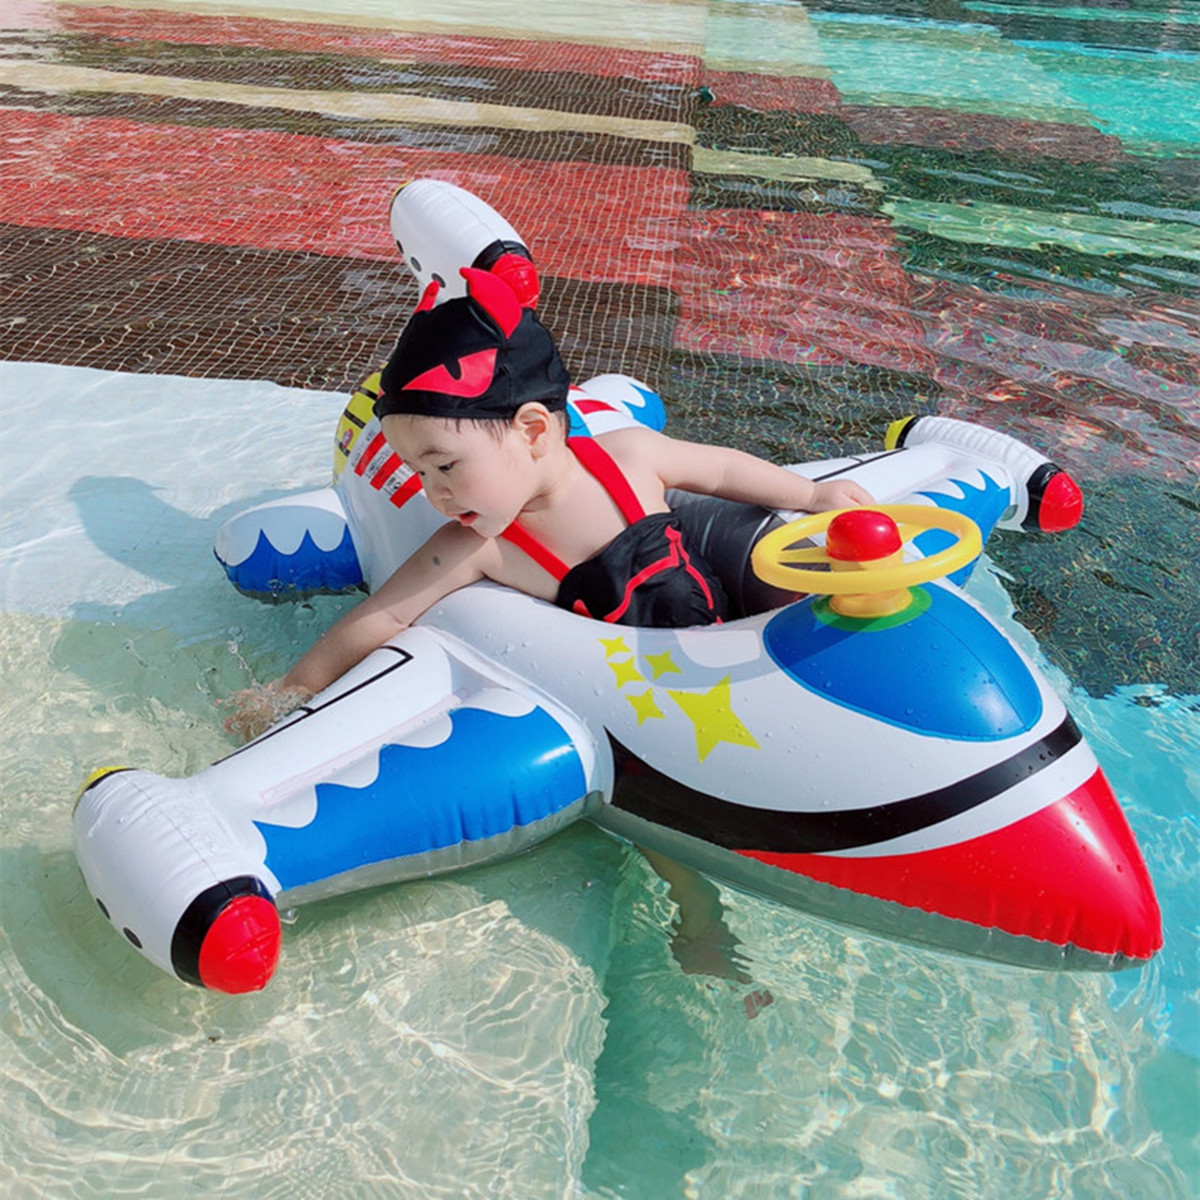 Inflatable Float Plane Seat Boat Baby Kid Swim Pool Swimming Ring Wheel Fun Toy Safer Easy Maneuverability Stable Bright Color